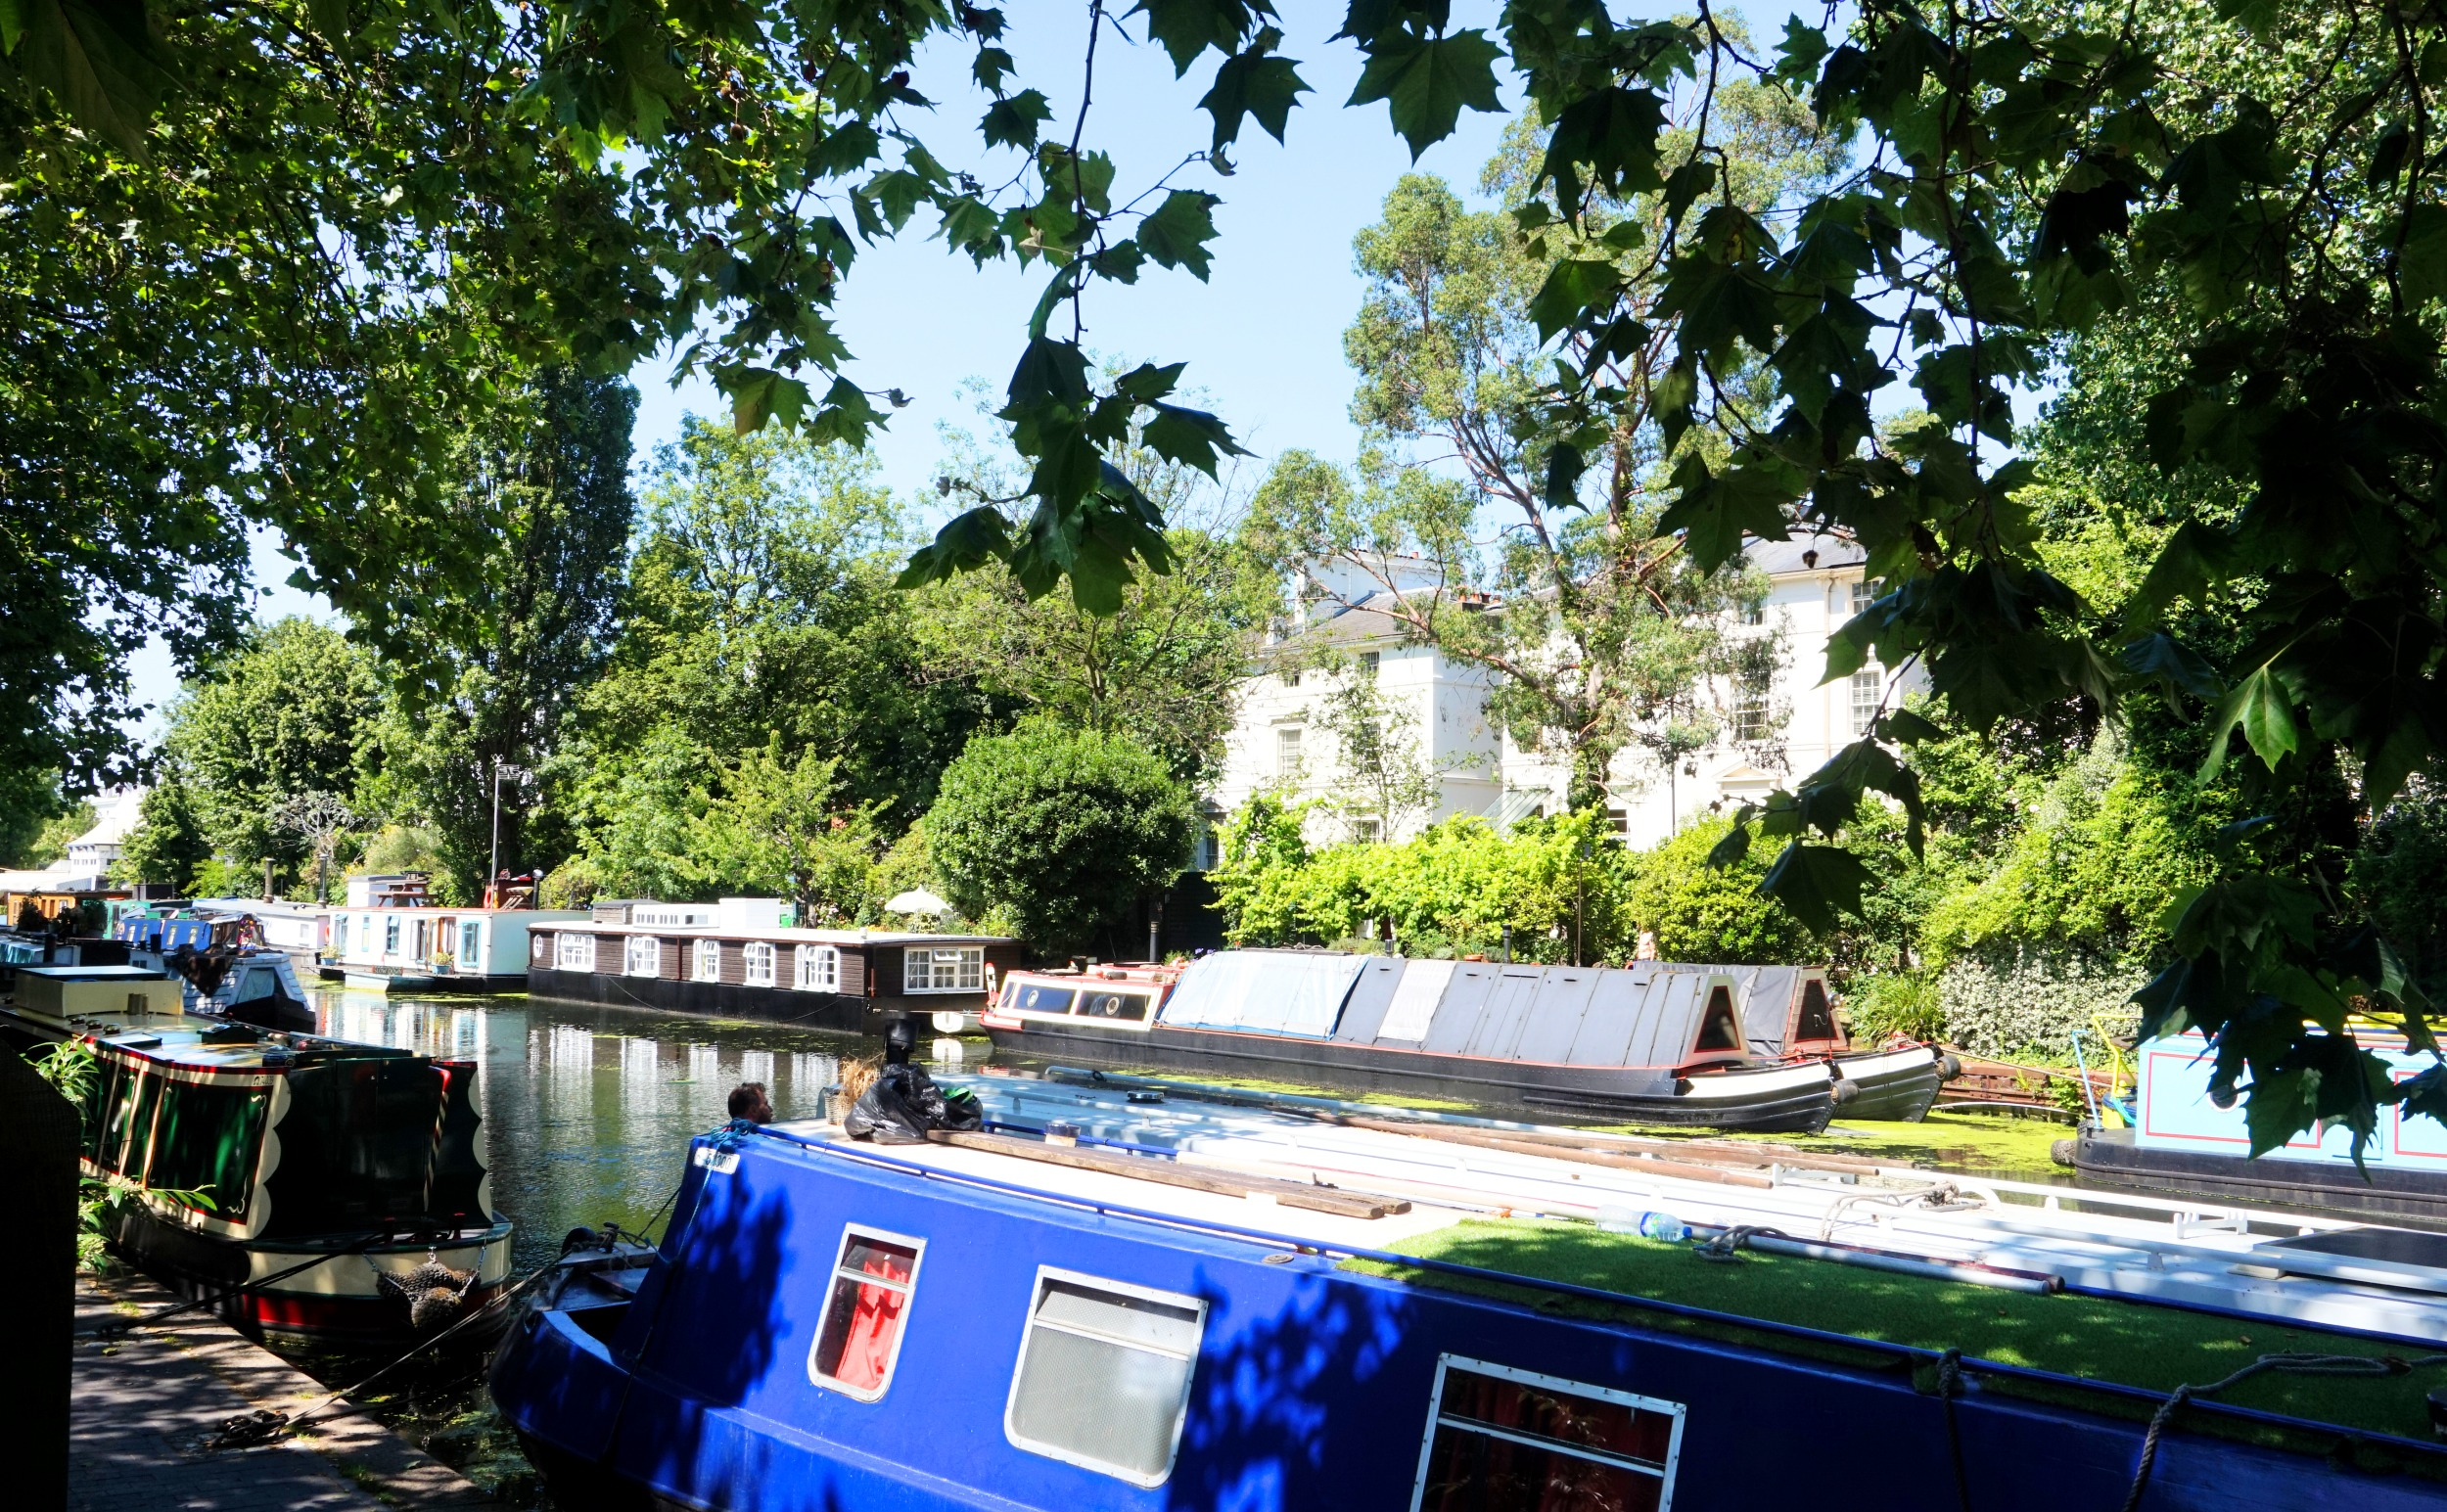 Regents-Canal-1